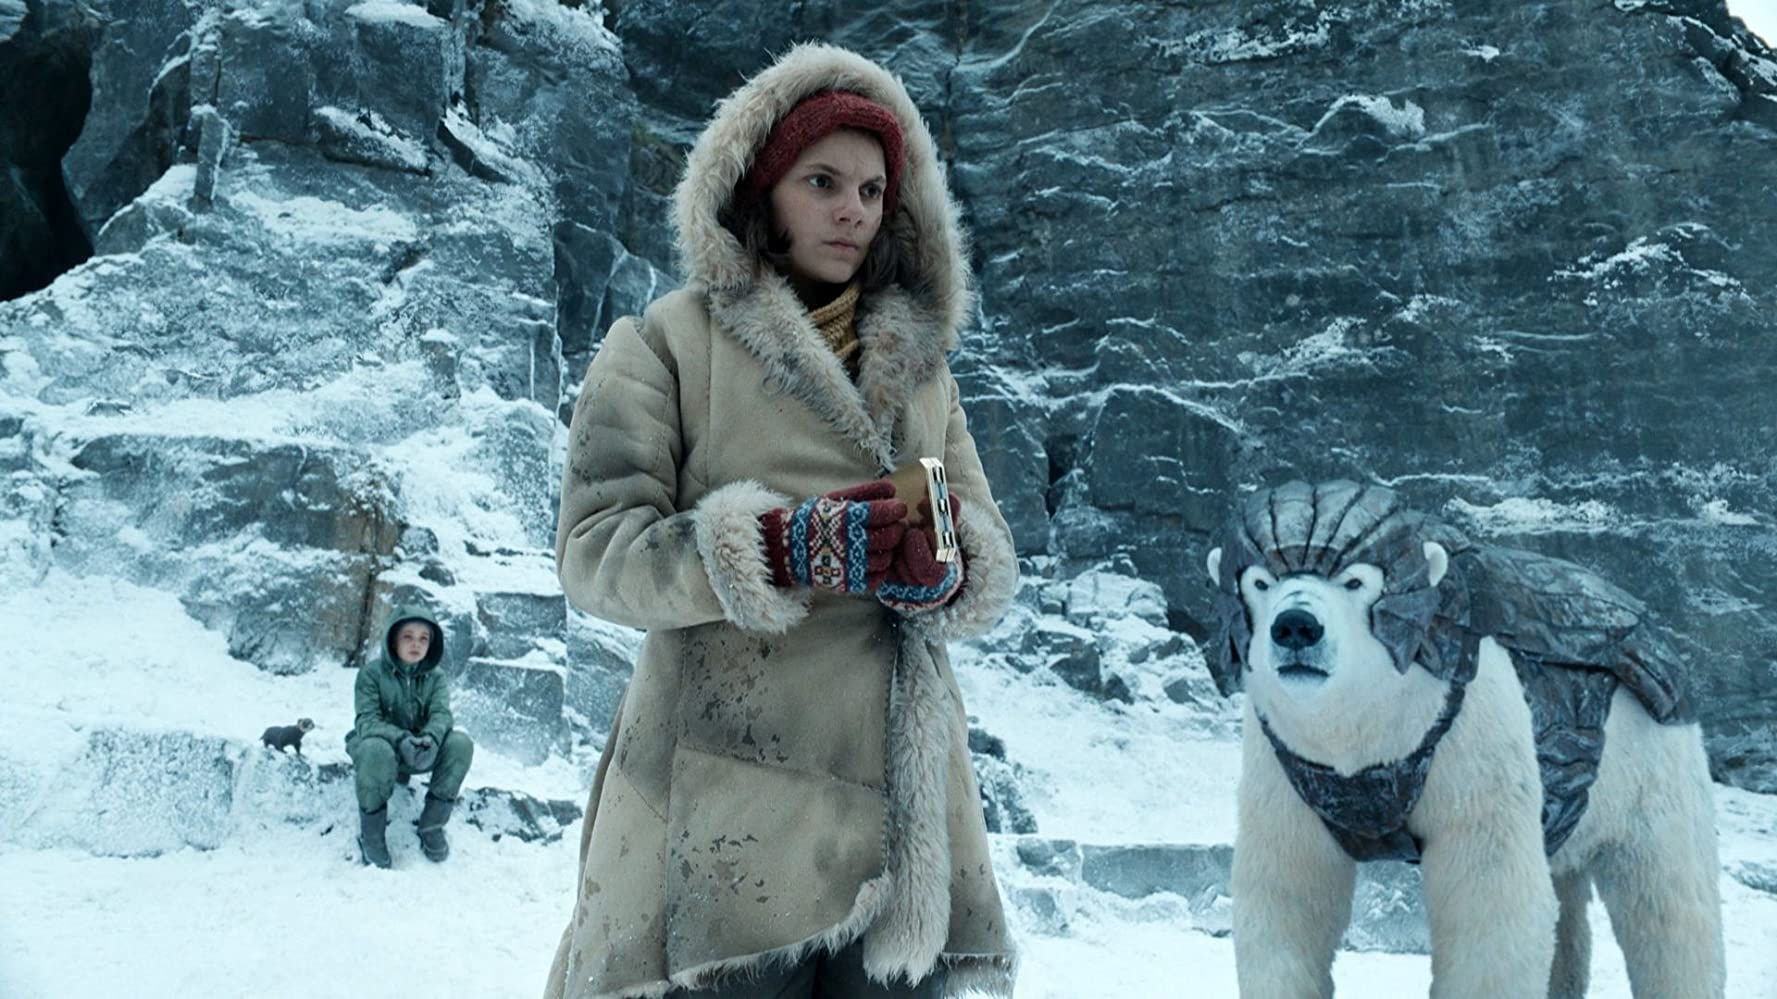 Lyra and a panserbjørne, or armoured polar bear, in His Dark Materials